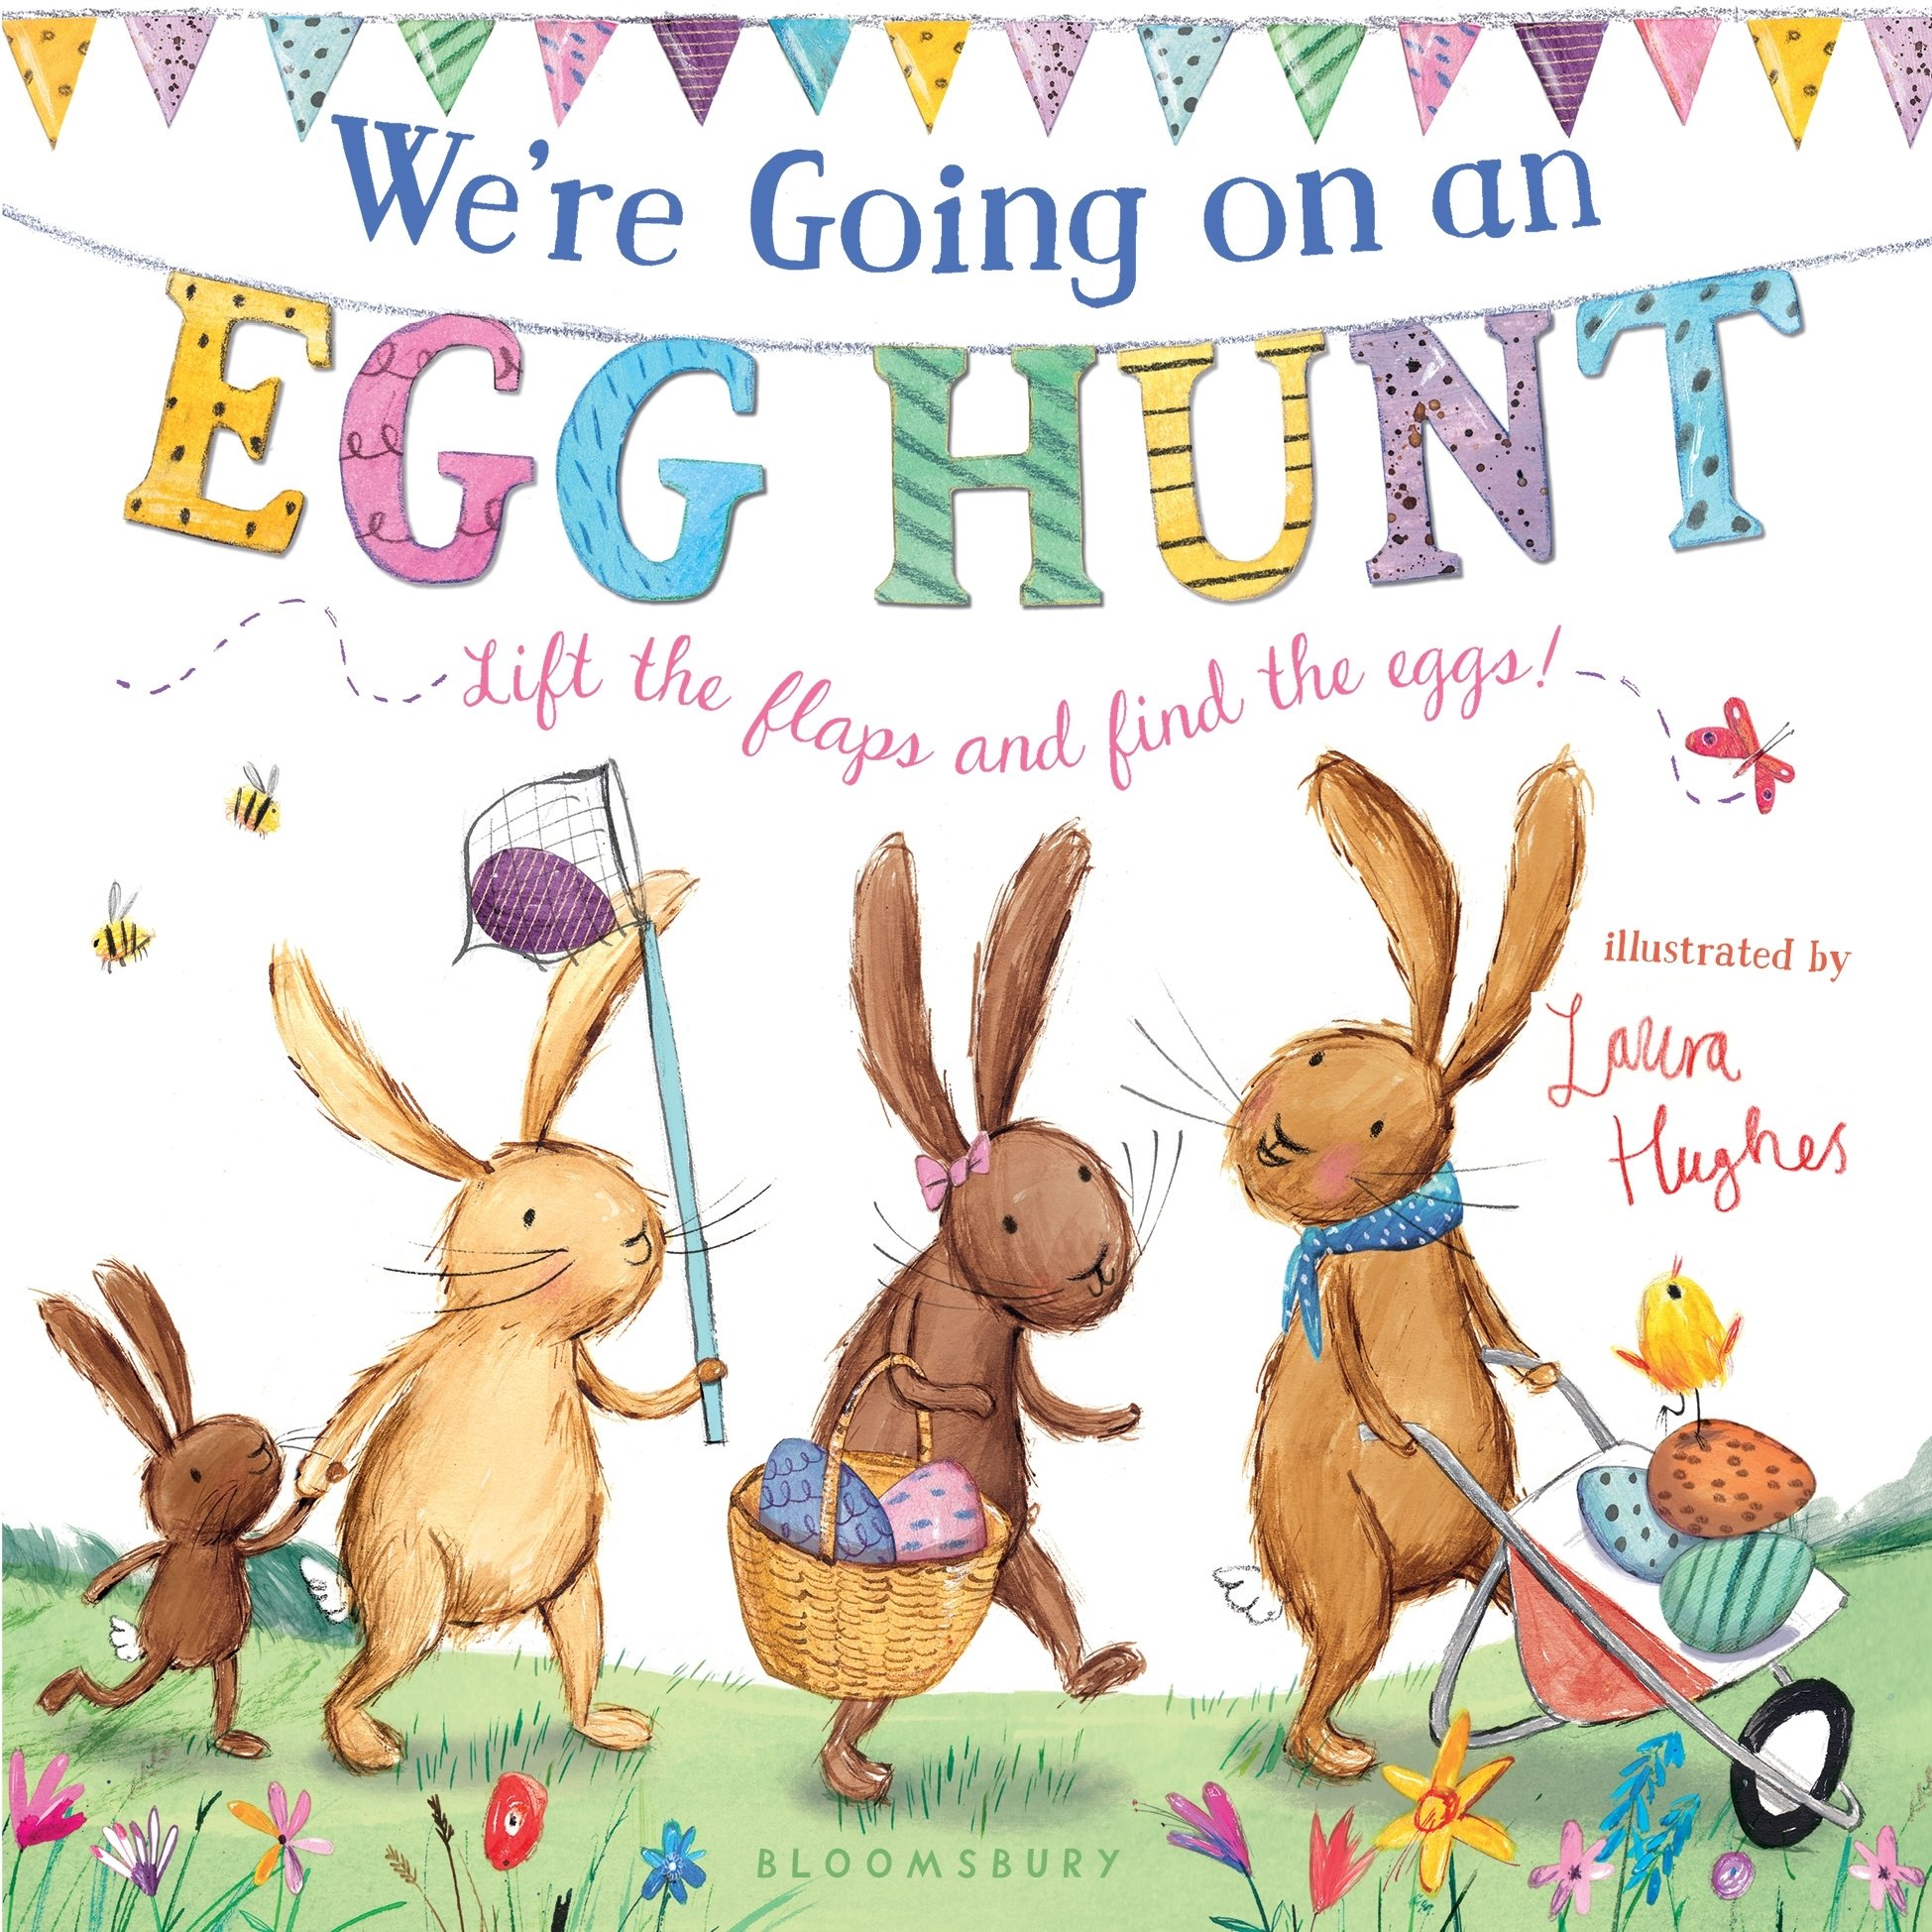 We're Going on an Egg Hunt: Amazon.co.uk: Hughes, Laura: Books